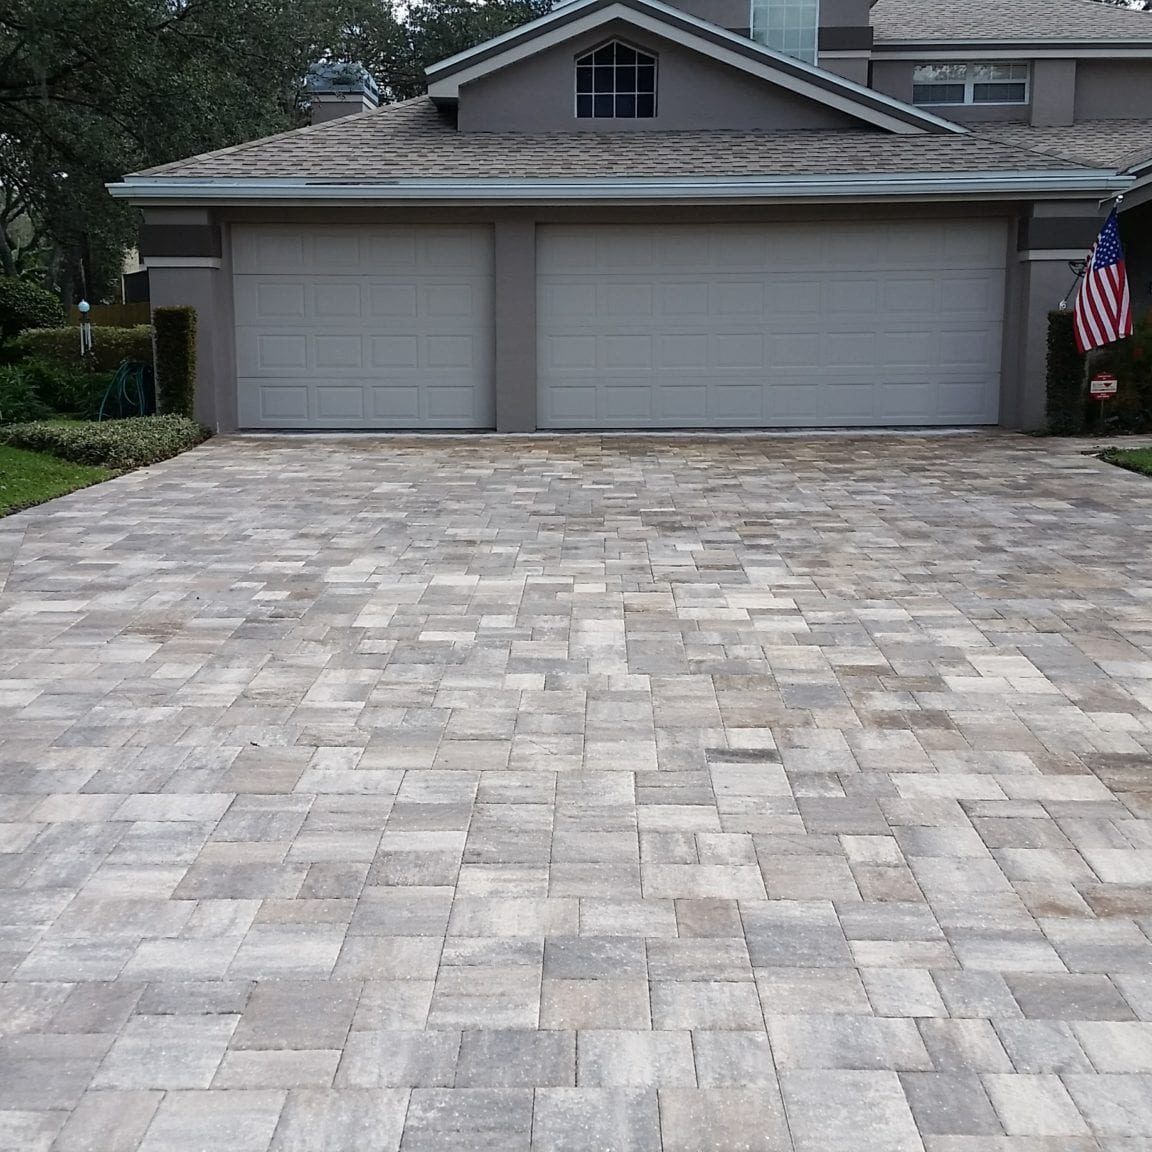 Complete Paver Sealing With the right maintenance plan in place, your pavers should last – and look beautiful – for years. Our paver sealing service is a key part of that maintenance plan. We always use a three-step process that will keep your pavers clean, attractive, and well-protected: Paver Sealing Lakeland FL Check Icon Paver Cleaning We start with a pressure washing service. This removes dirt and other imperfections. It kills mold, mildew, and moss. And it leaves your pavers looking the way you want them to: curb appeal friendly. Check Icon Paver Joint Replacement Your pavers' joints are packed with sand. Over time, the sand can become discolored and erode – and it's our job to replace it. We remove the old sand and swap it with material that is attractive and durable. Check Icon Paver Sealing Finally, we seal your pavers. This protective coat keeps the qualities you like about your pavers in – and keeps the elements that could hurt it out. Our team uses a high-quality sealant that offers optimal protection against stains and water damage.